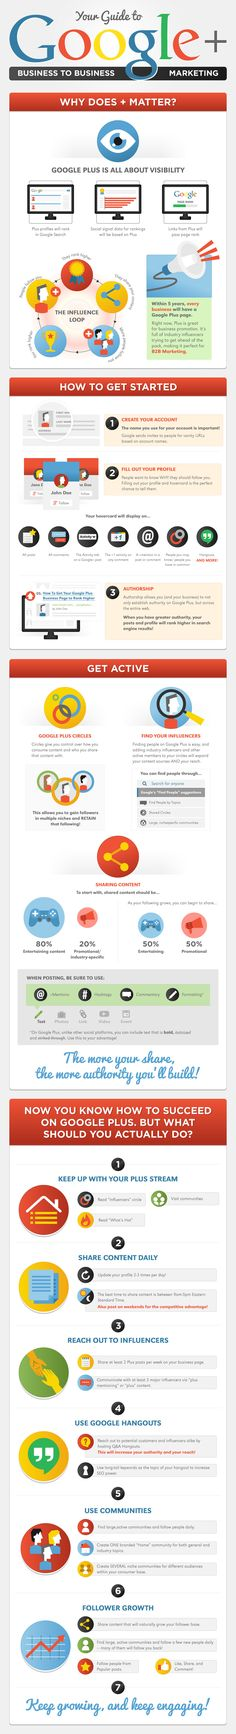 Your Guide to Google+ Business to Business Marketing - infographic